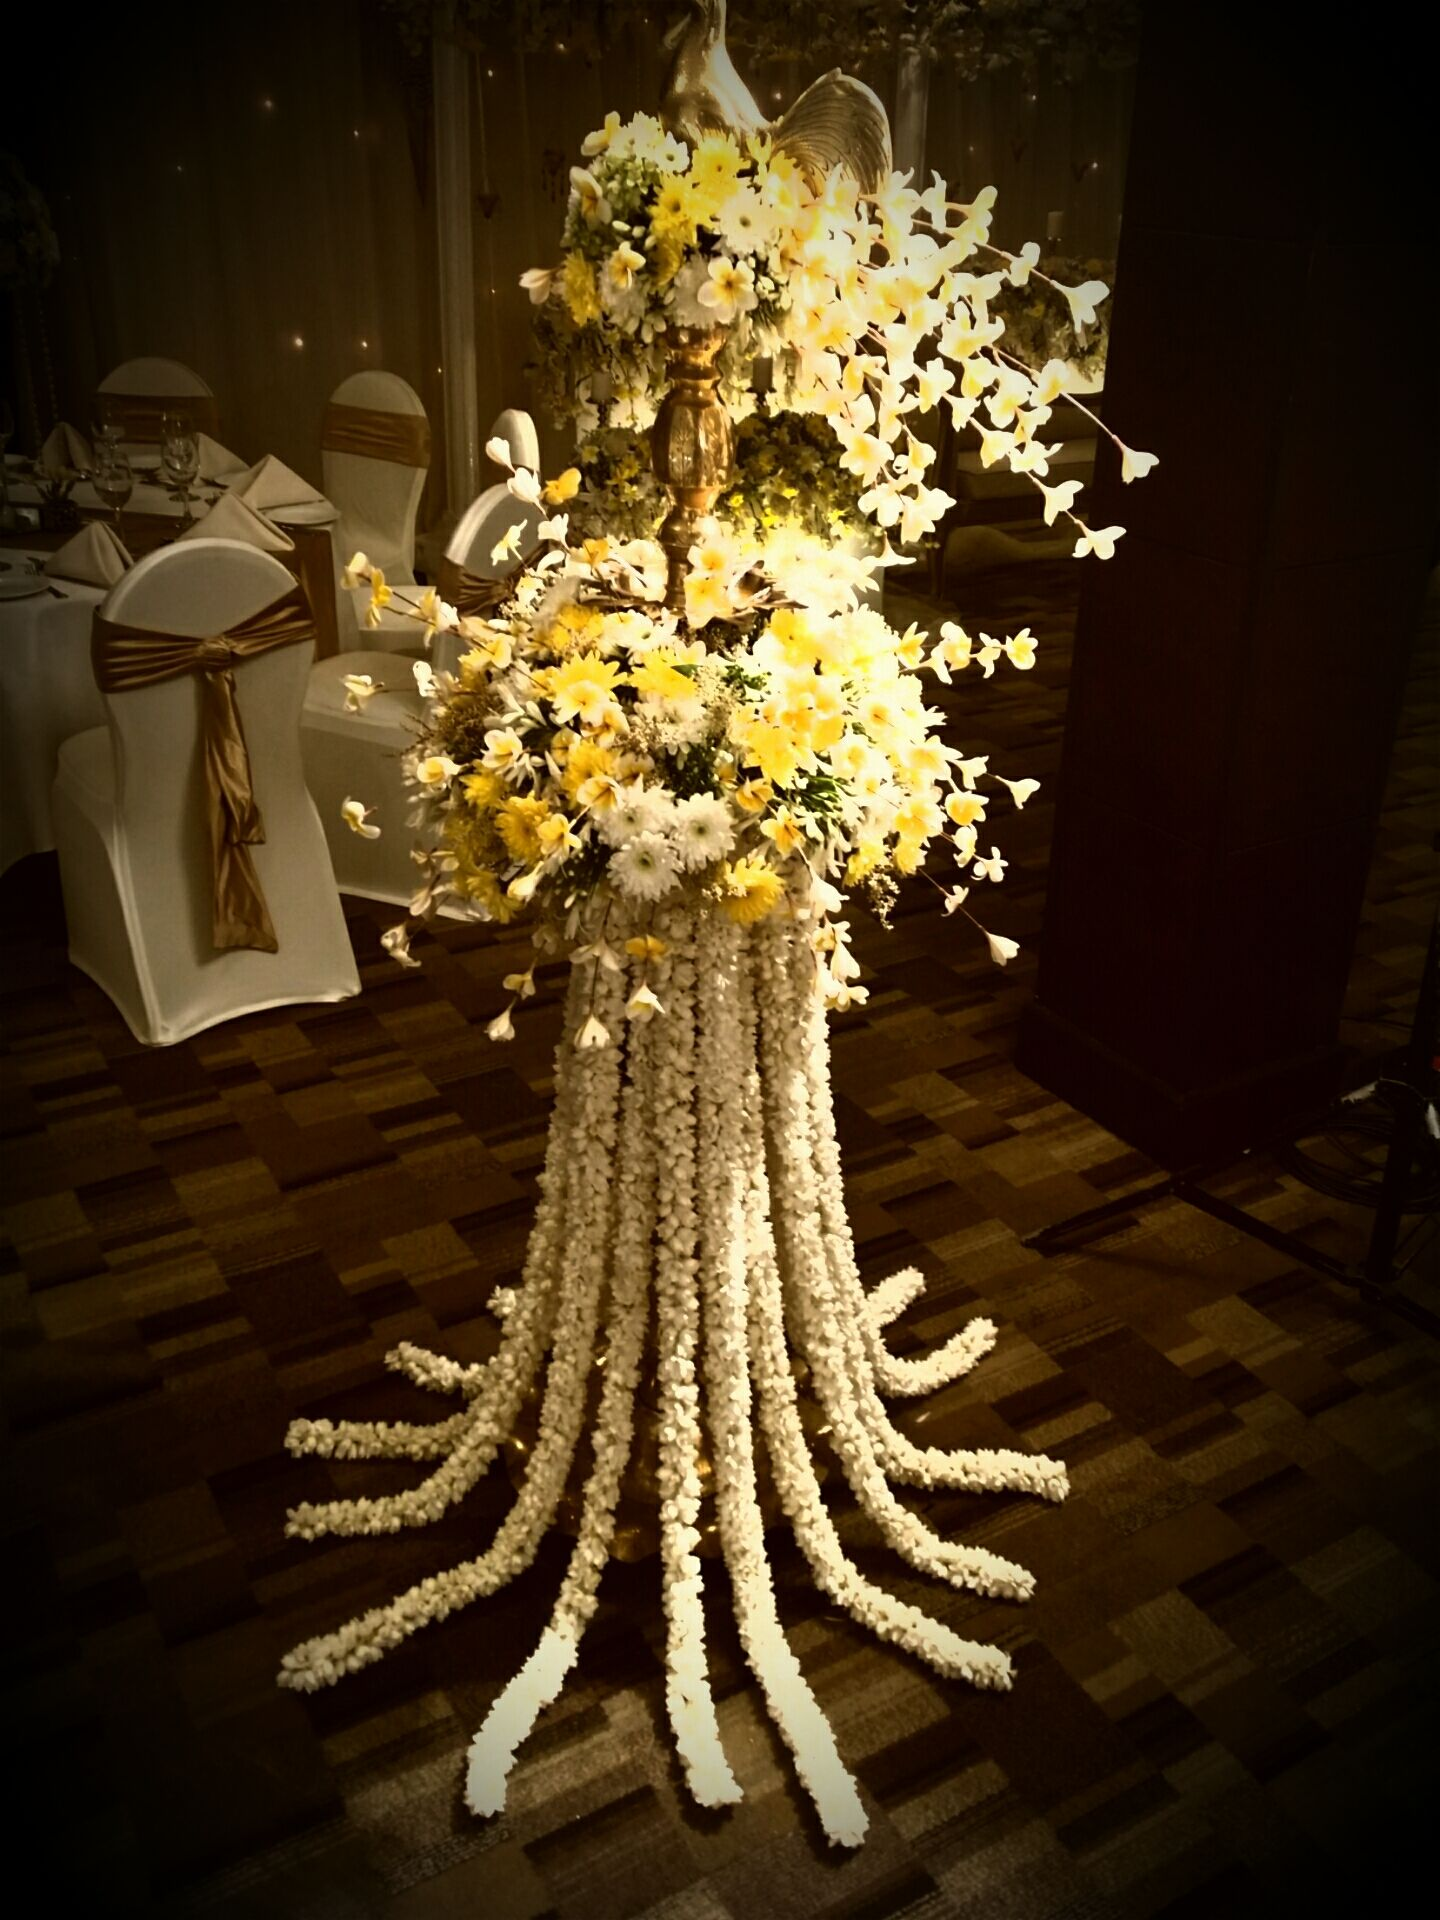 oil lamp decoration | the wedding flowers gallery | Pinterest | Weddings for oil lamp flower decorations  166kxo